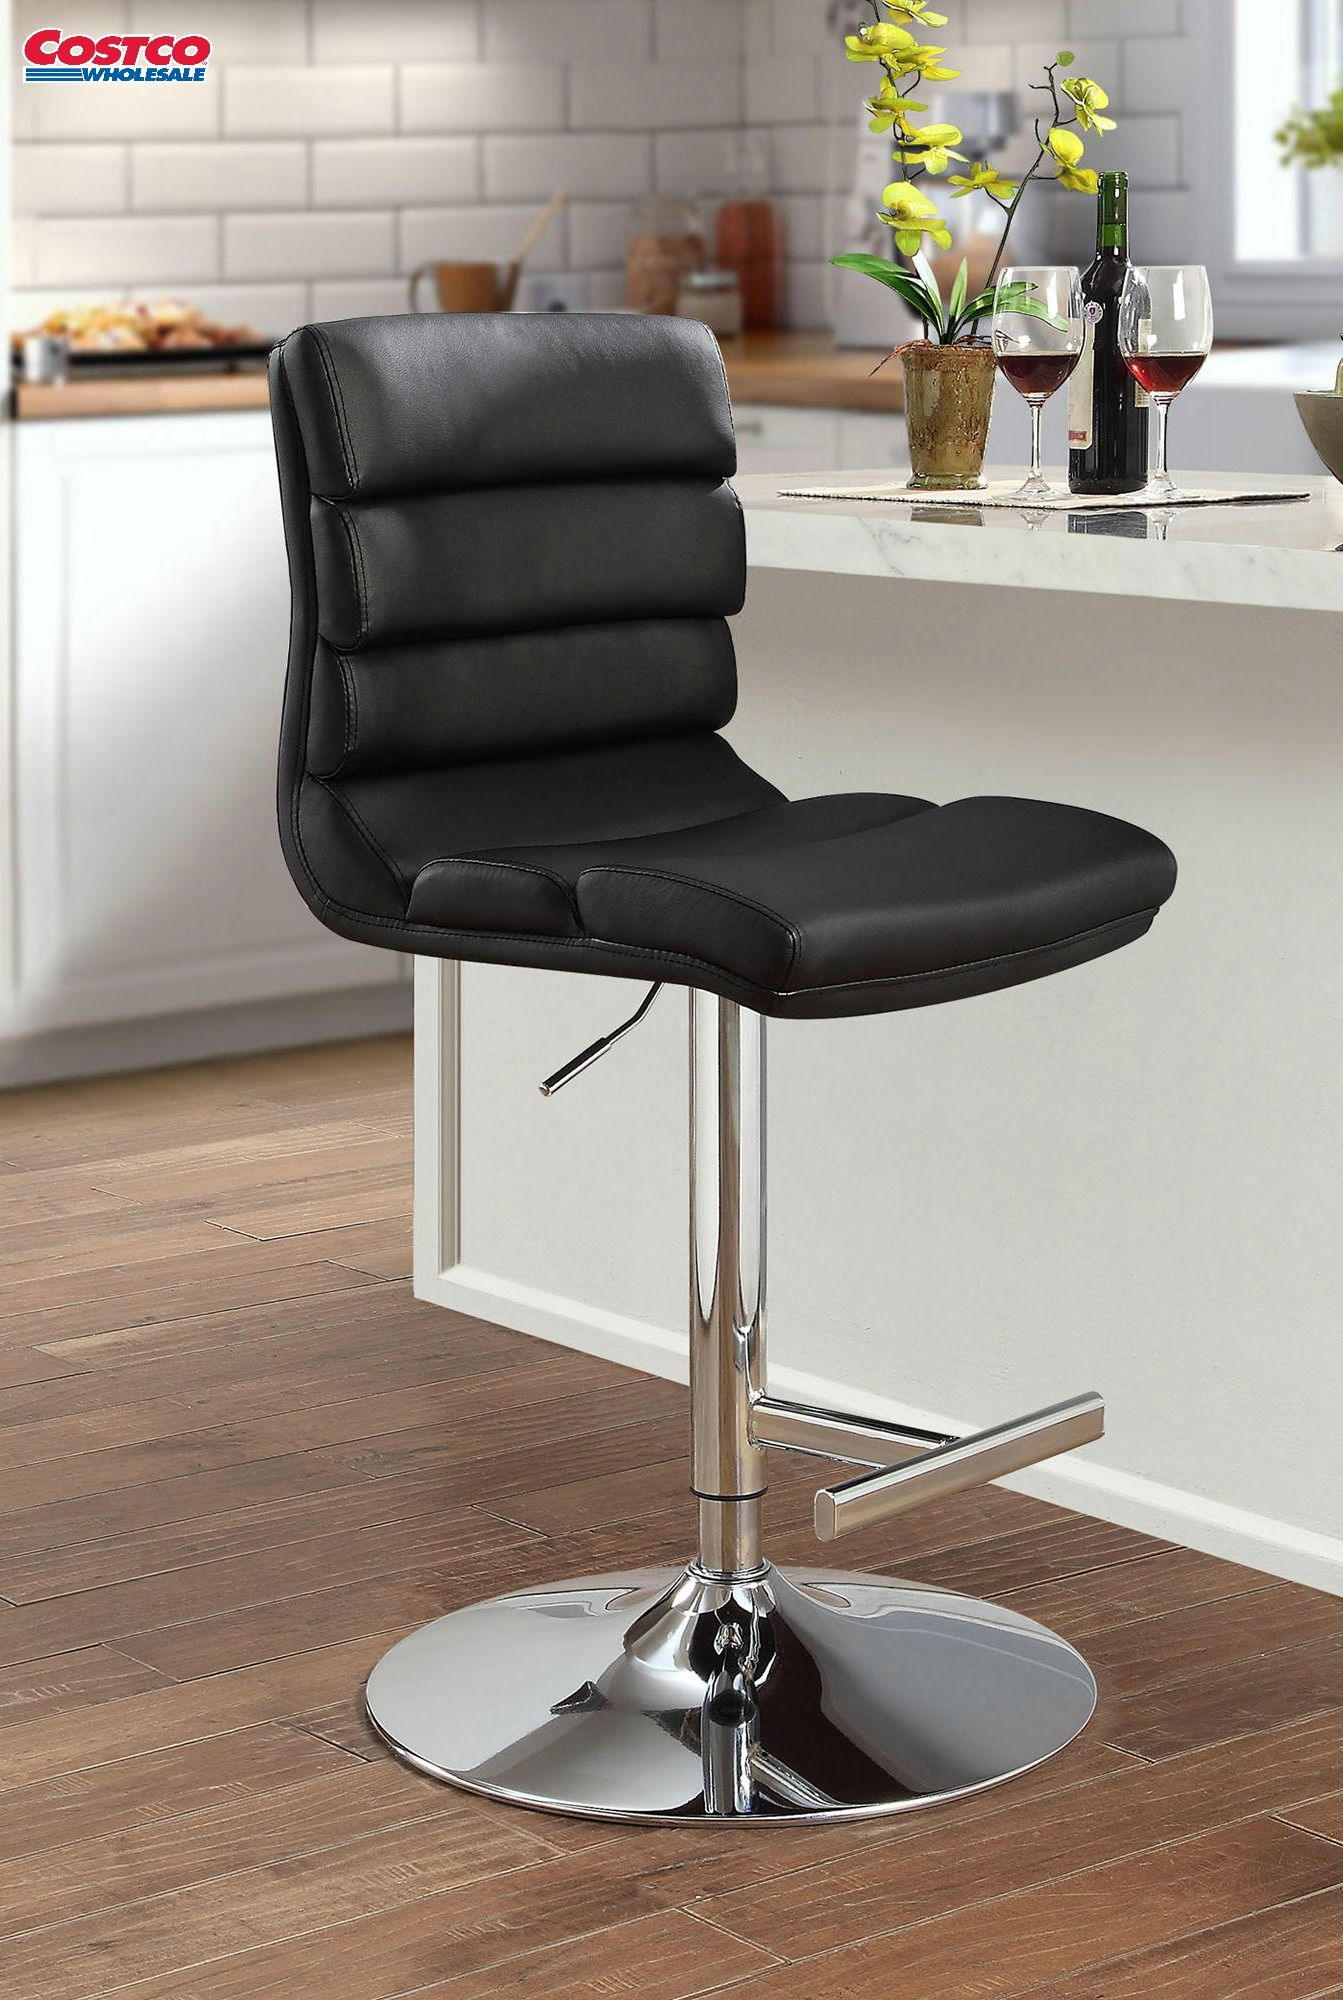 The Contemporary Solara Adjustable Bar Stool Features A Black